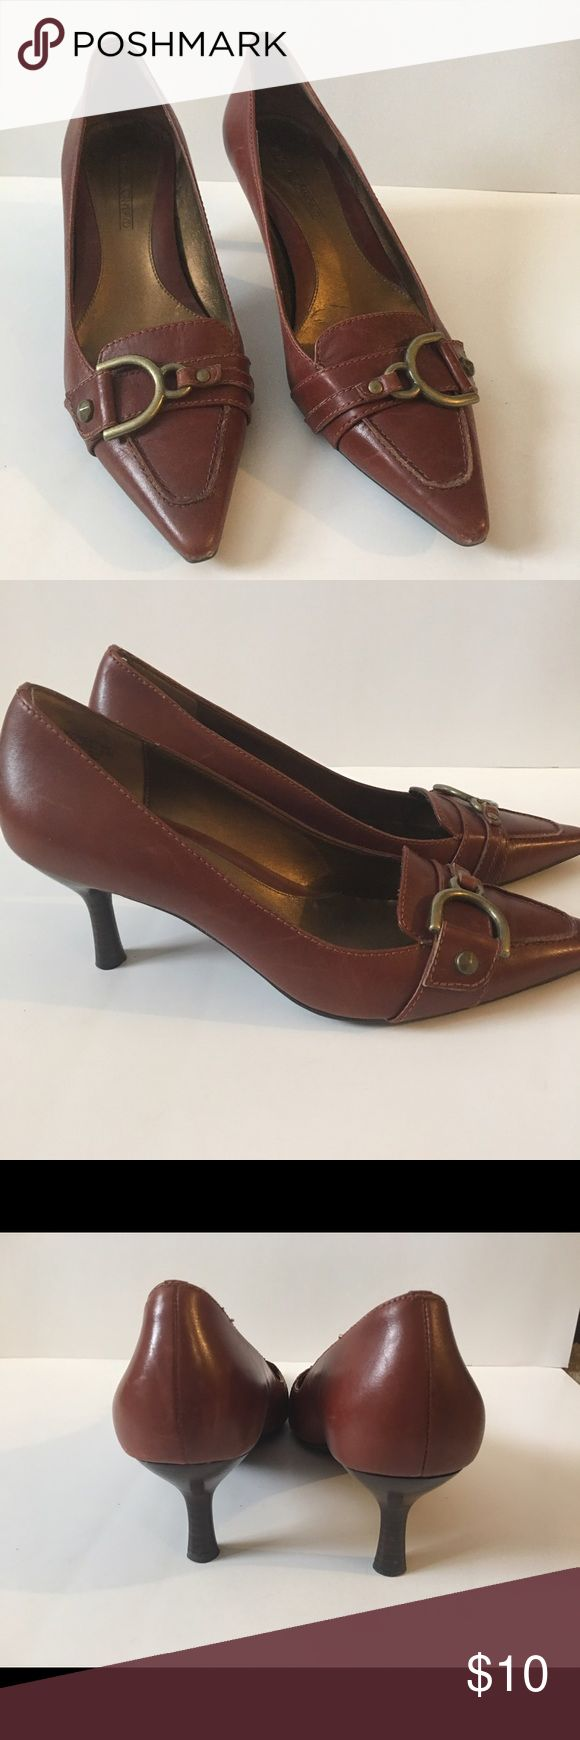 ✅Brown Buckled Heels Great condition. No tears or noticeable marks! Joan & David Shoes Heels